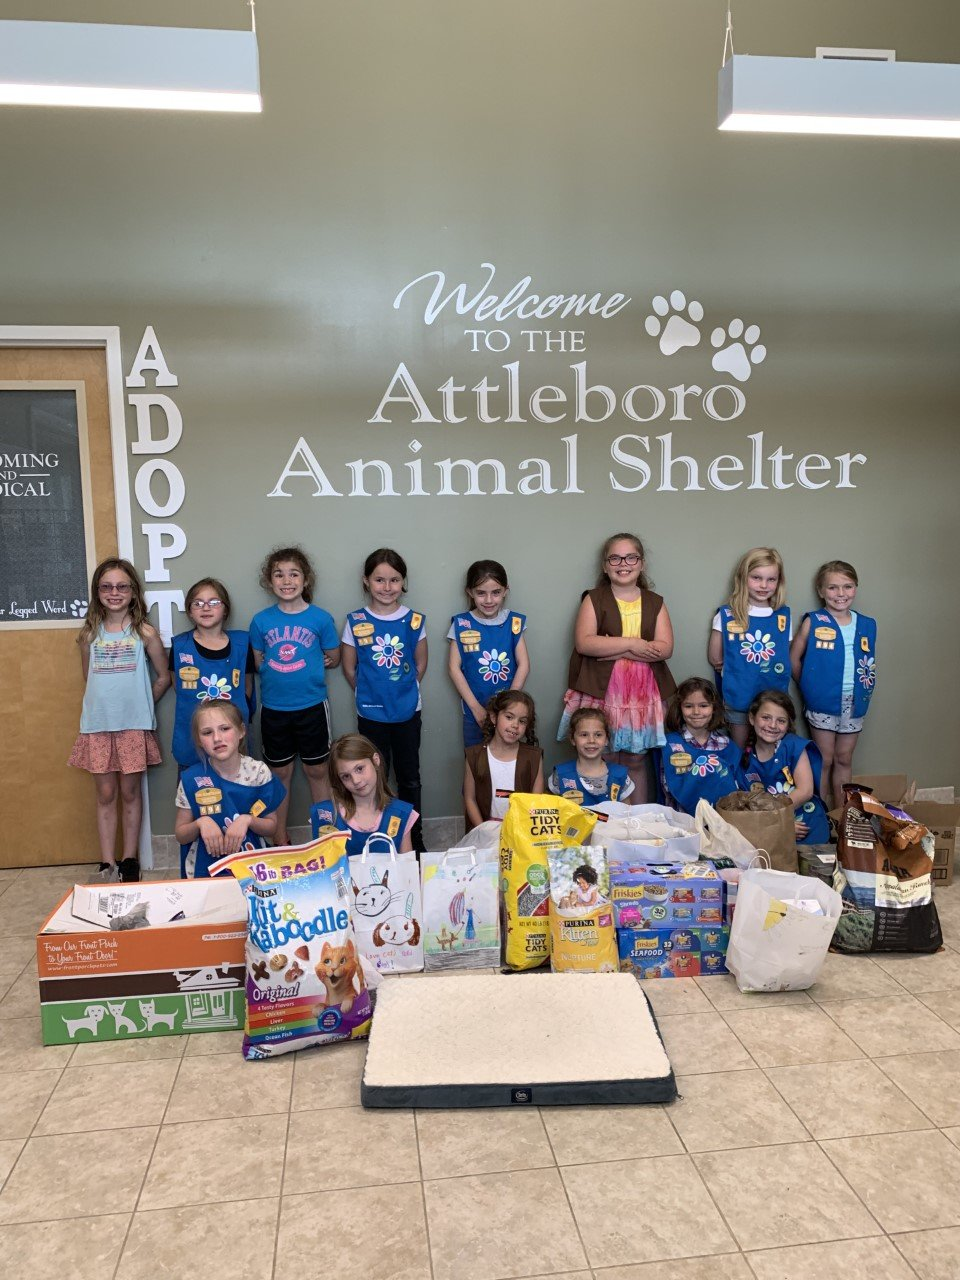 Rehoboth Girl Scout Troop 694 helps out Animal Shelter